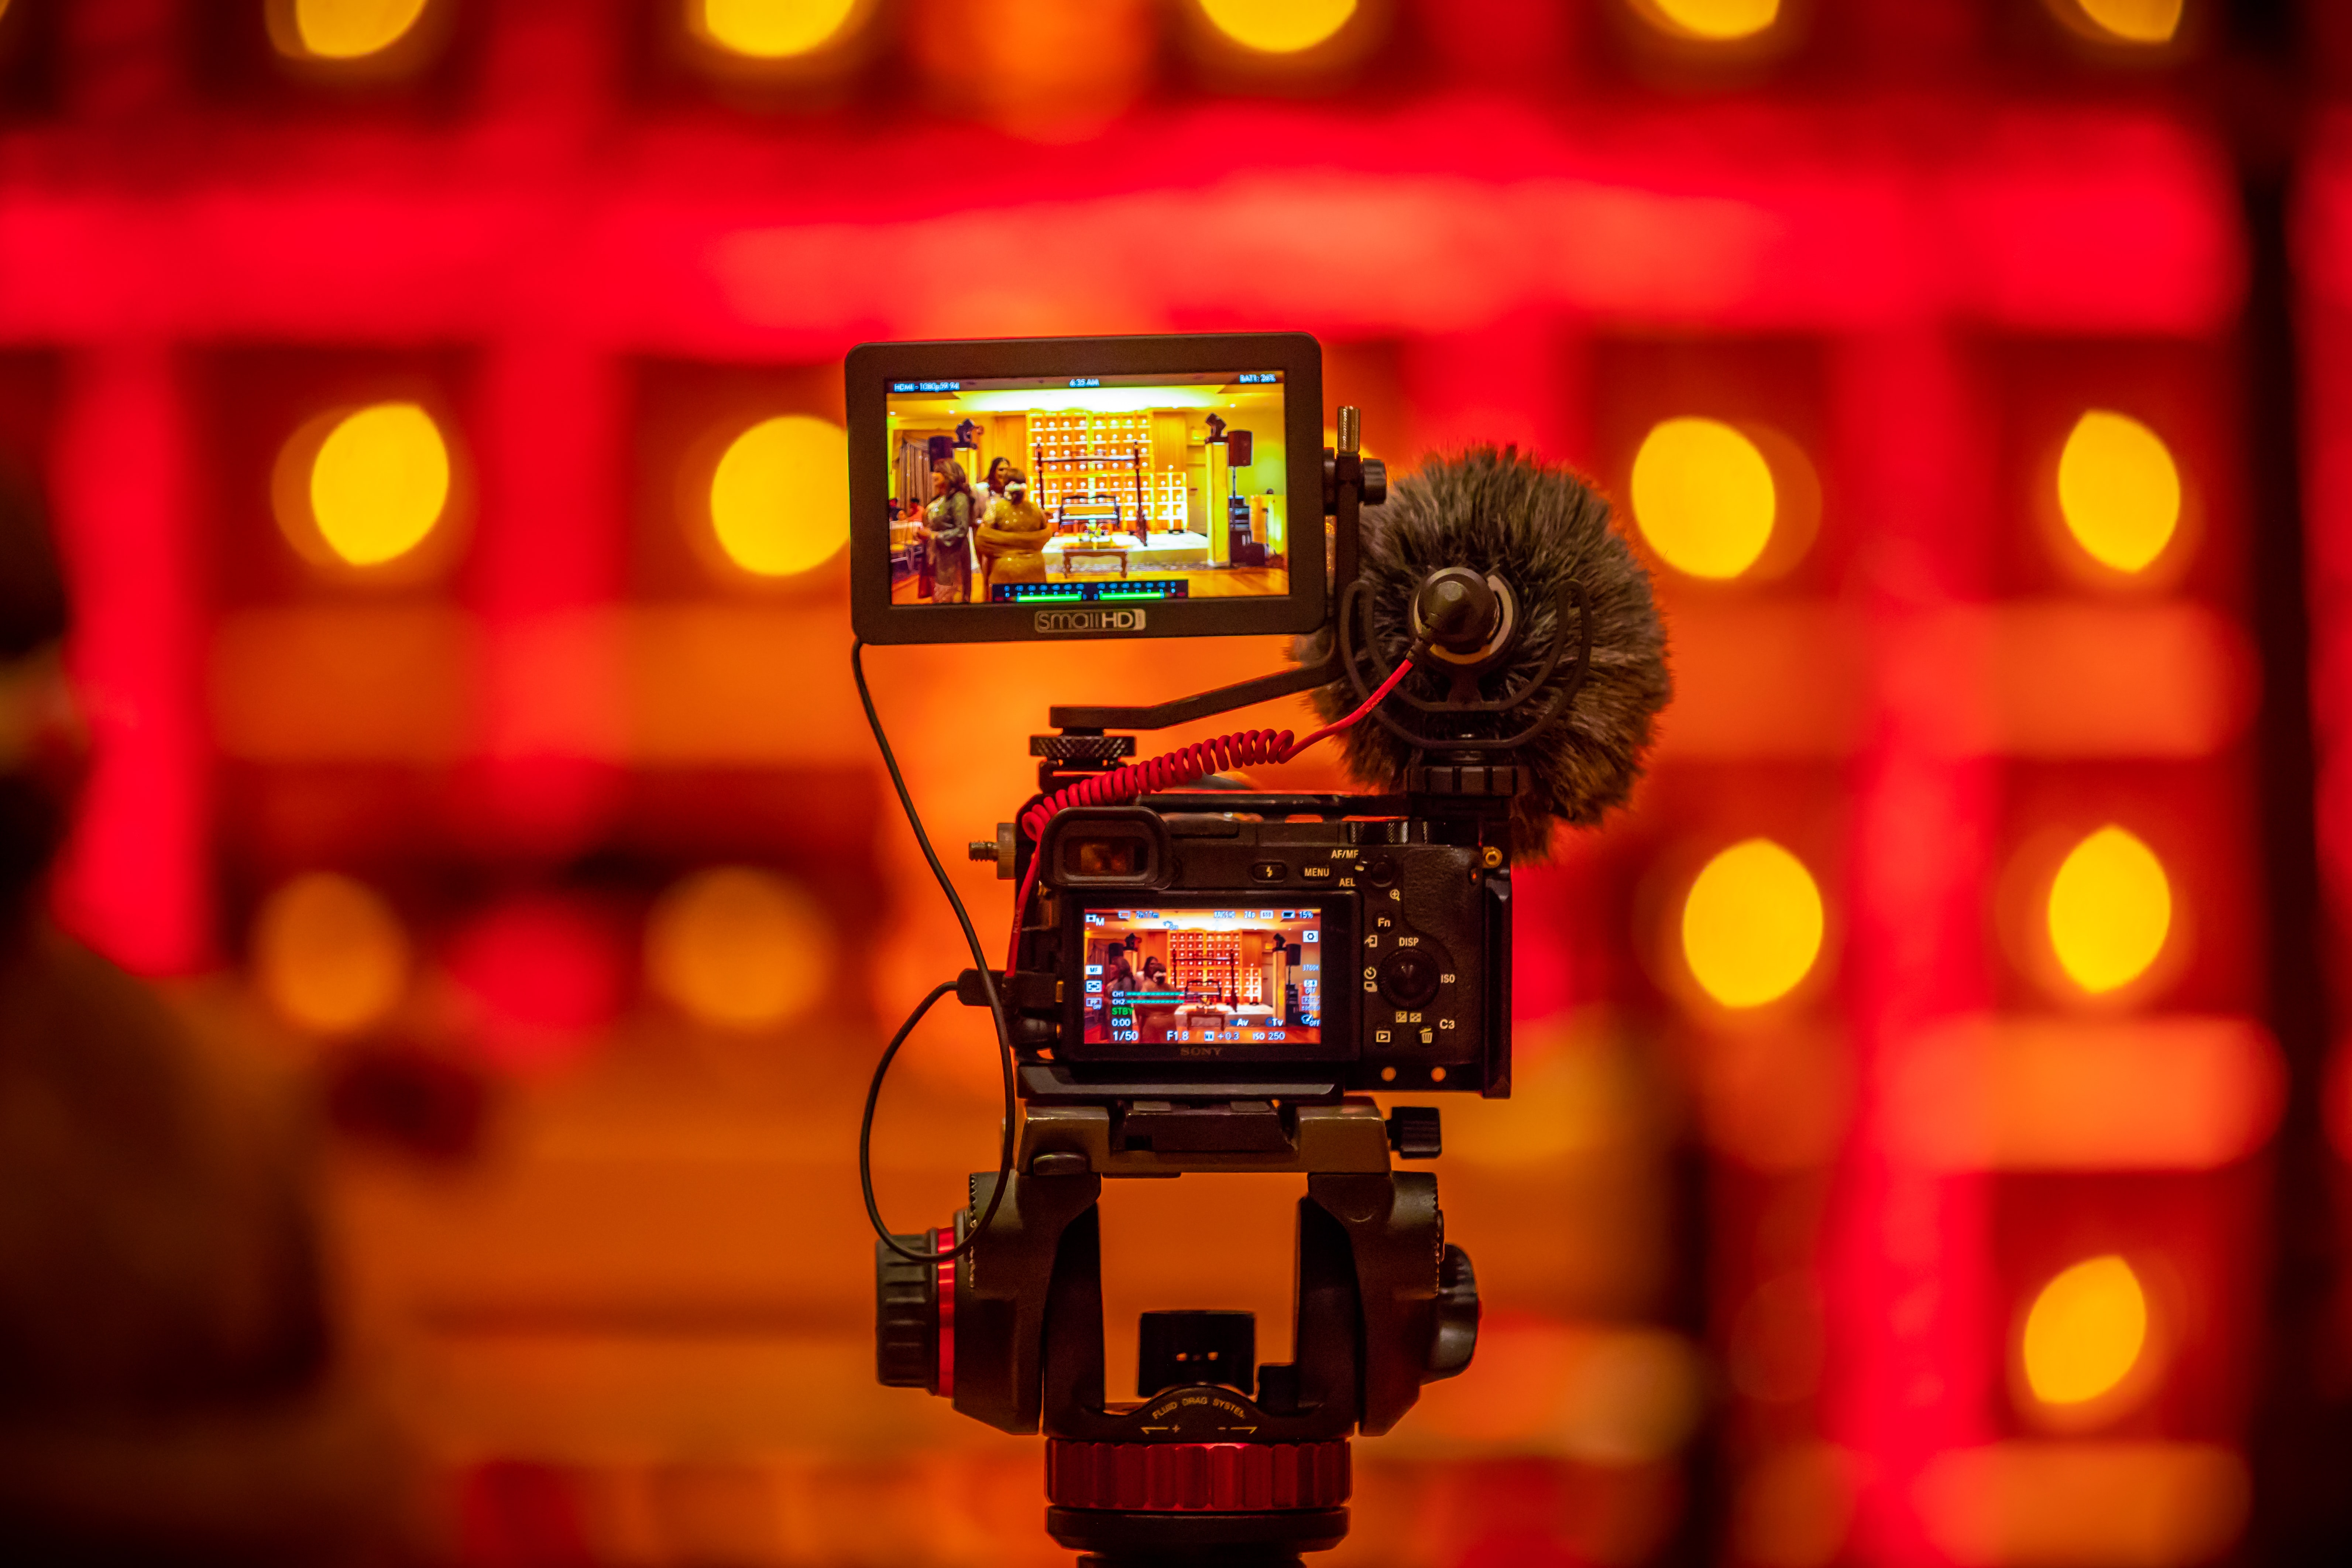 Live streams and virtual events could be the first place that experiential marketers turn